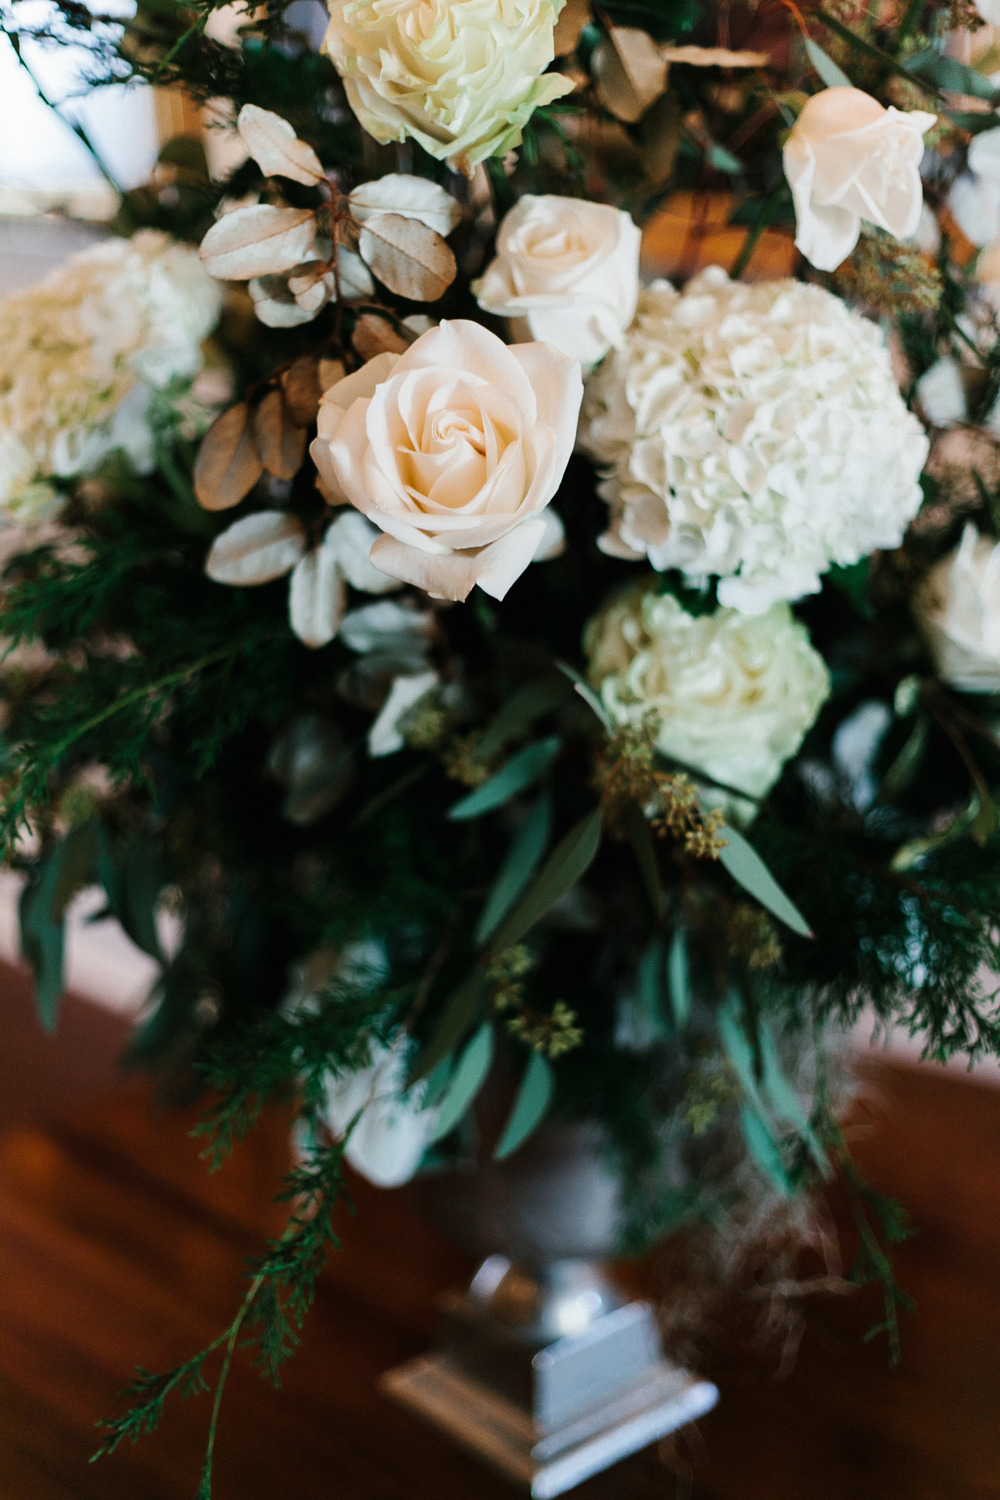 White rose and hydrangea centerpieces at winter wedding in Stillmore, GA by Mark Williams Studio